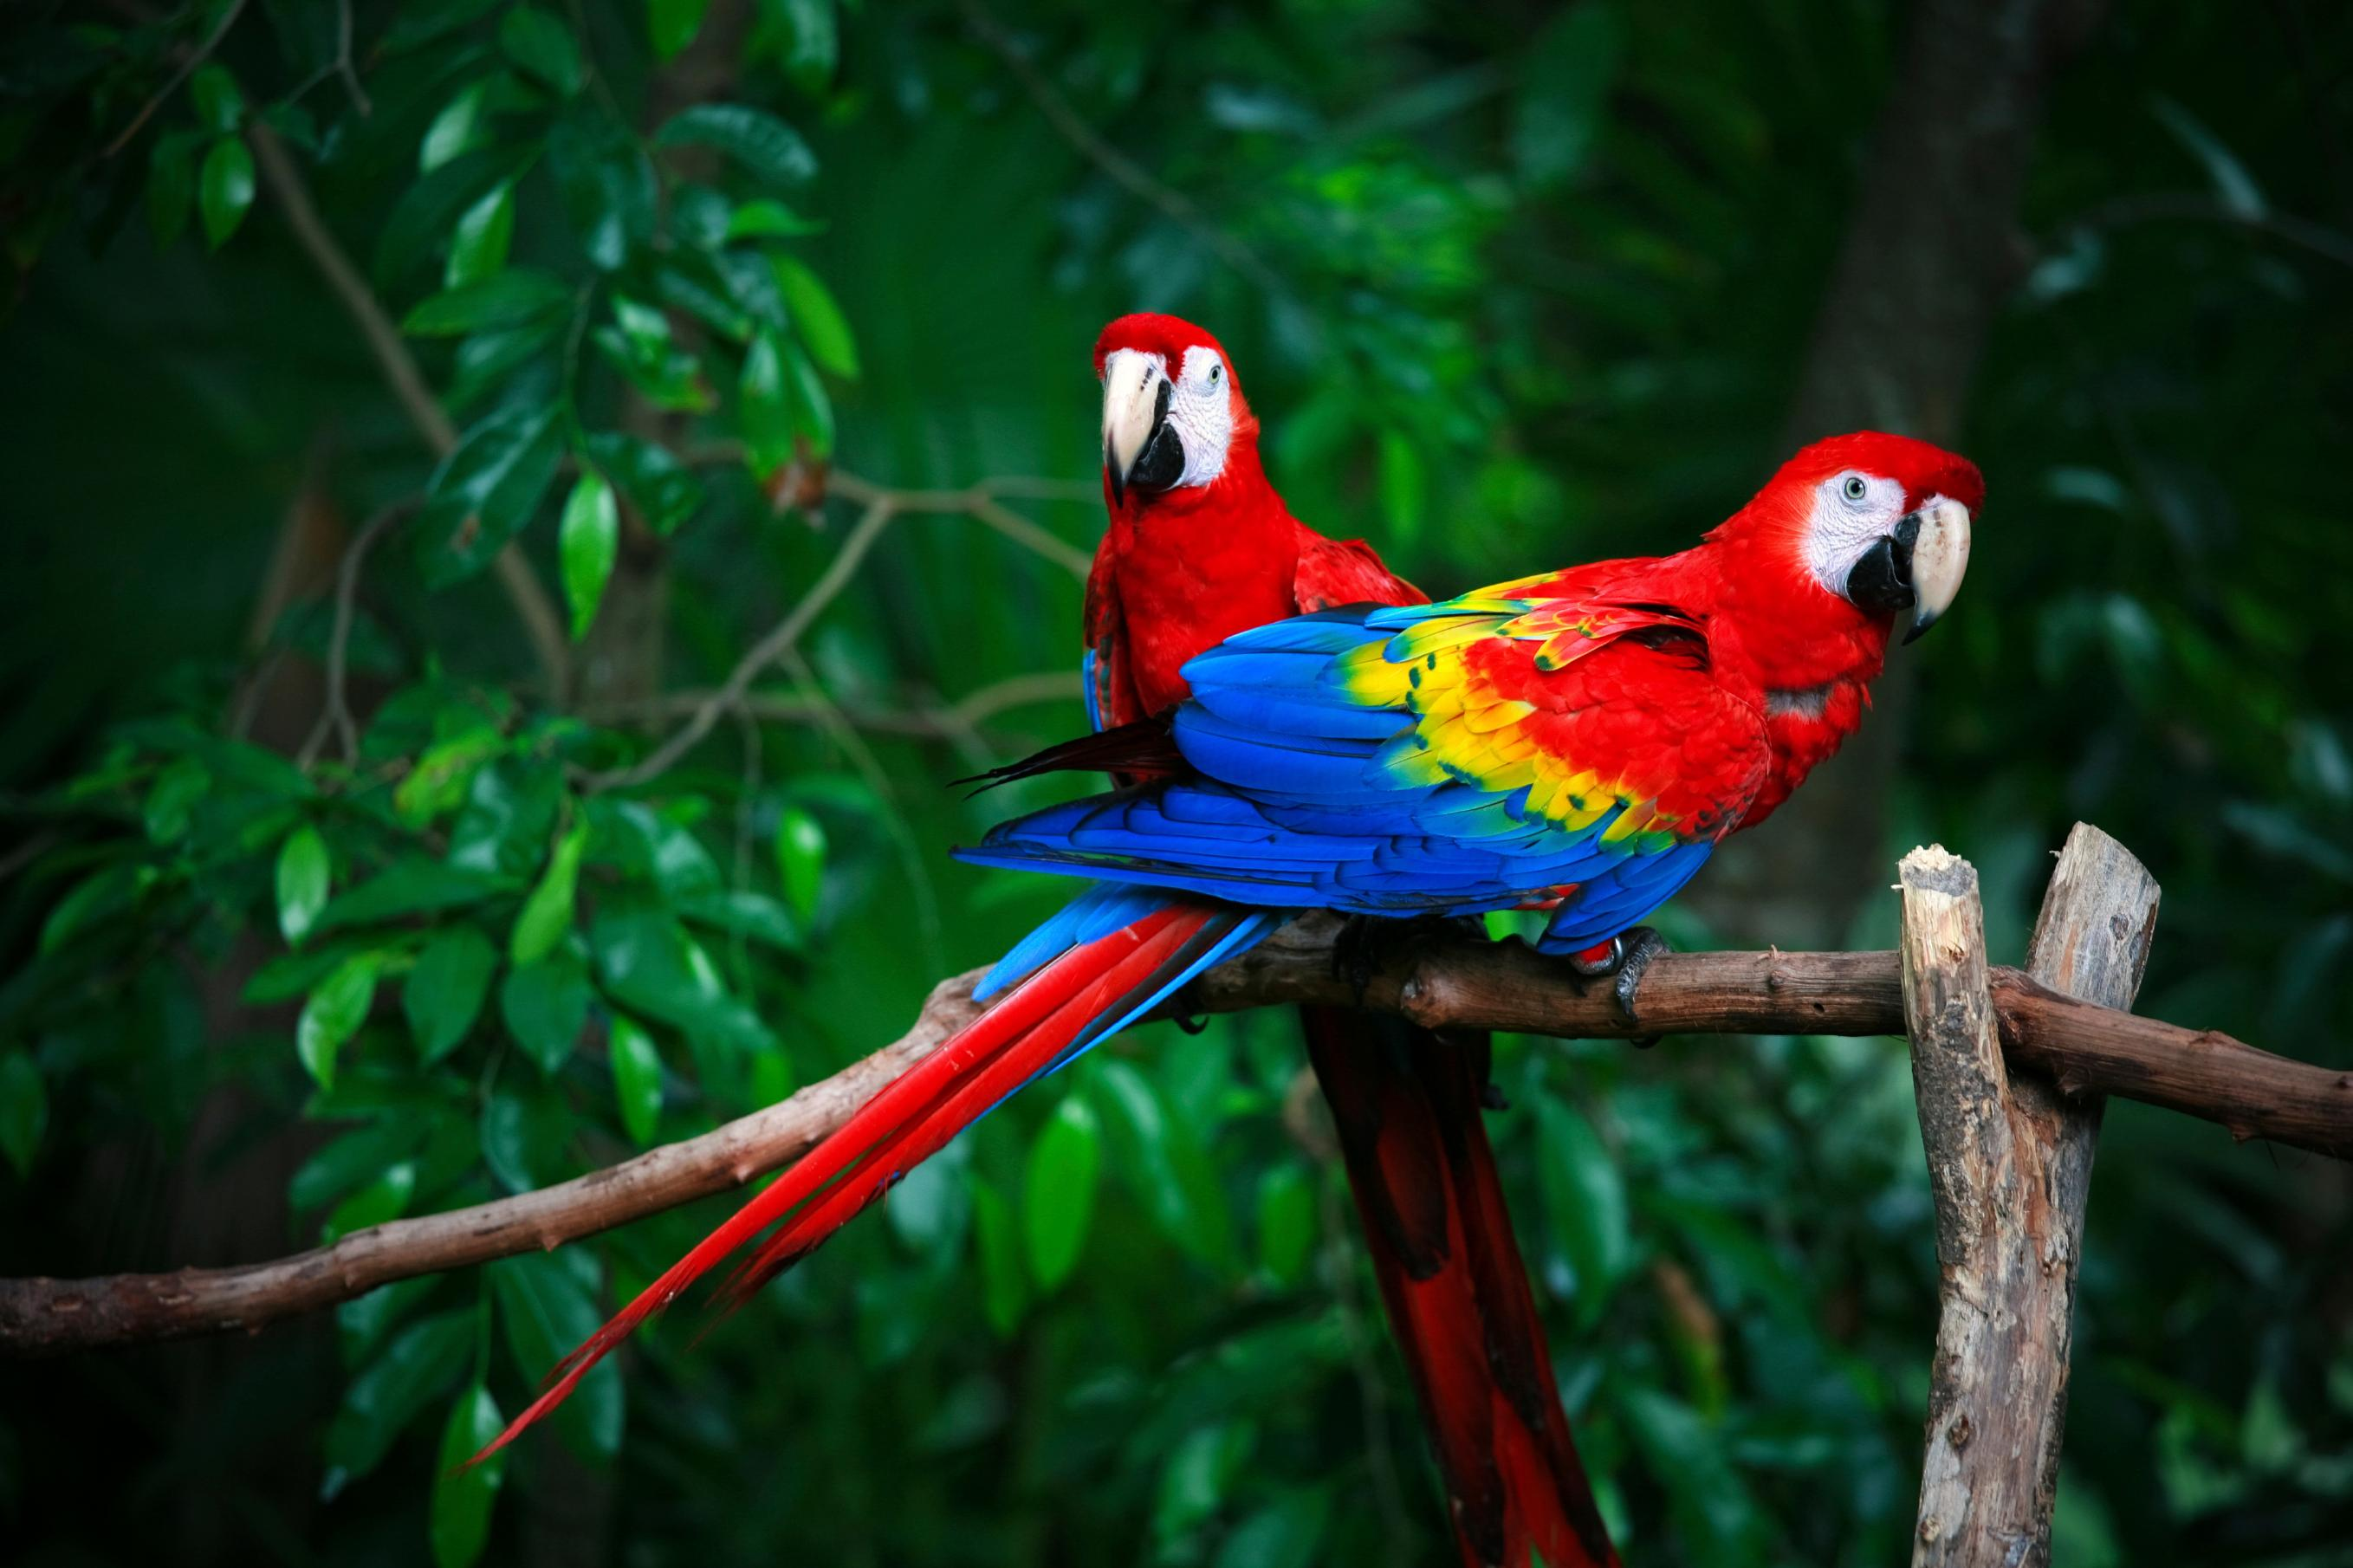 parrots What is a baby parrot called how long do parrots live what types of foods do parrots eat.